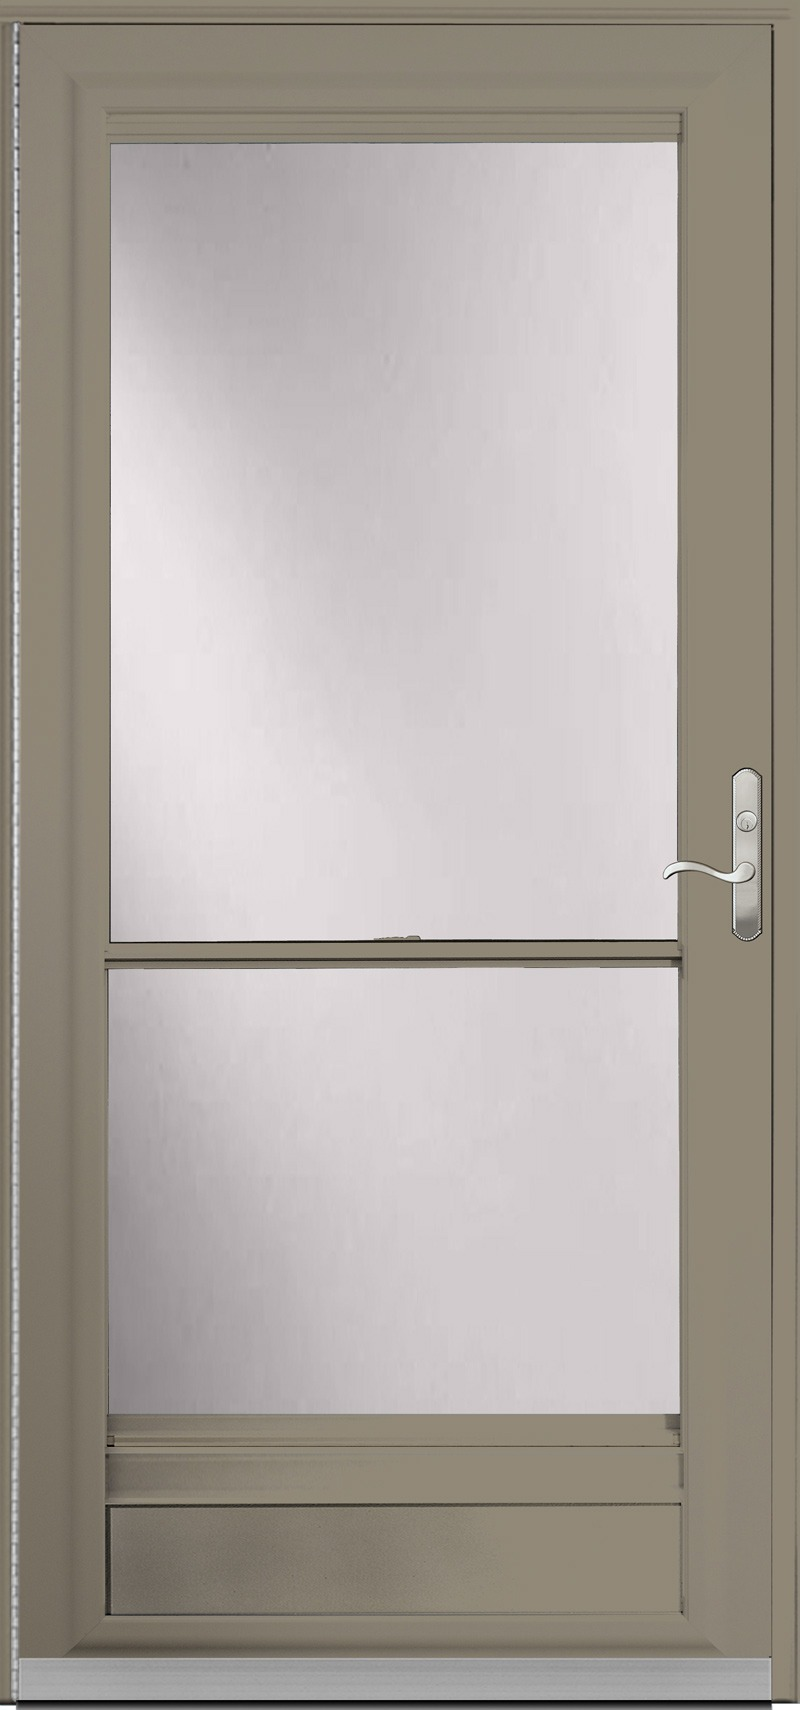 A door with a dark tan frame and glass